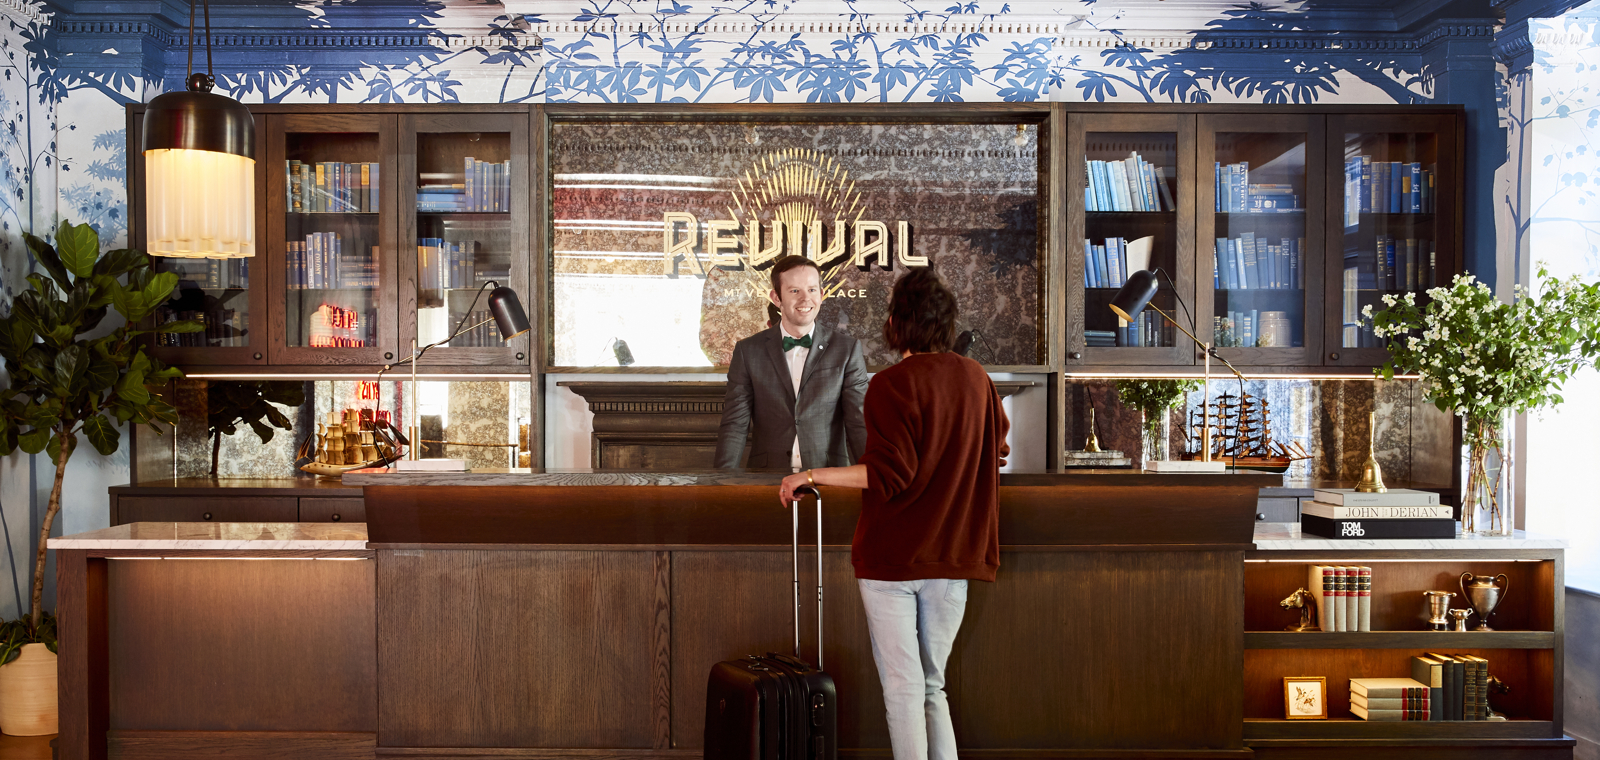 Lobby of Hotel Revival highlights local artists and purveyors, paying homage to Baltimore and the history of the address 101 W Monument.